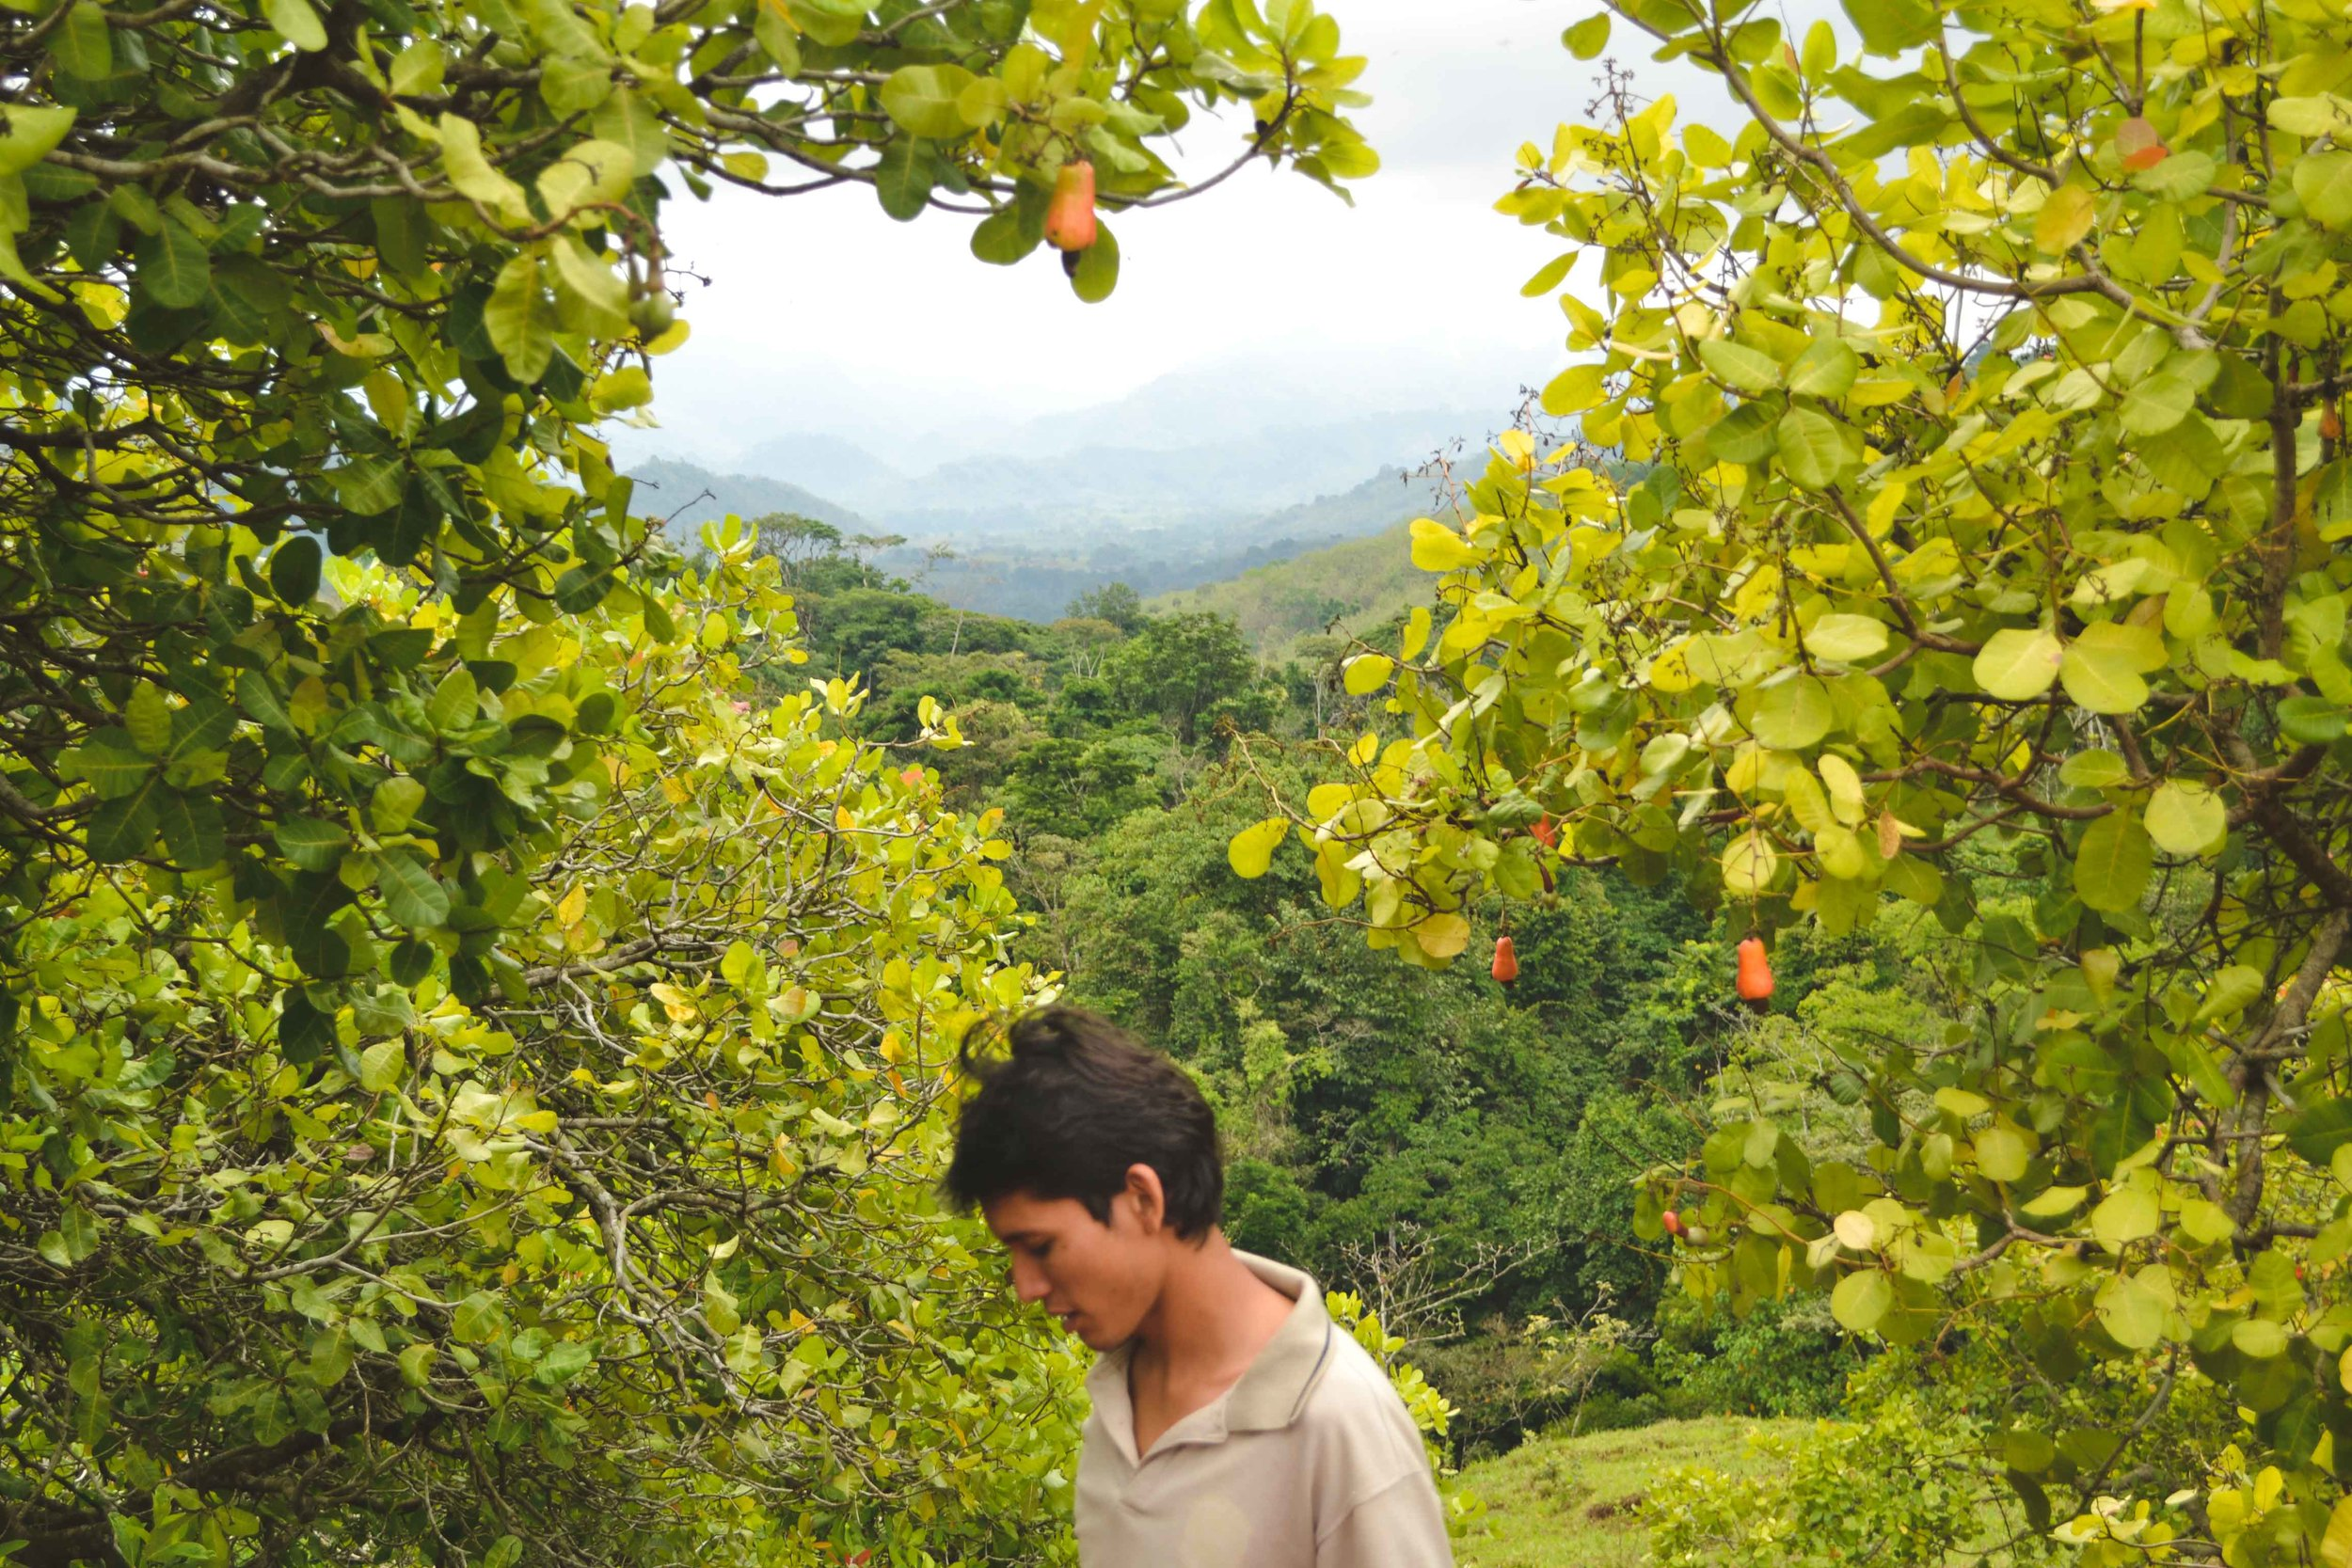 In the Valley of Marañon: Jorge stands among the cashew trees with the cloud forest in the back ground